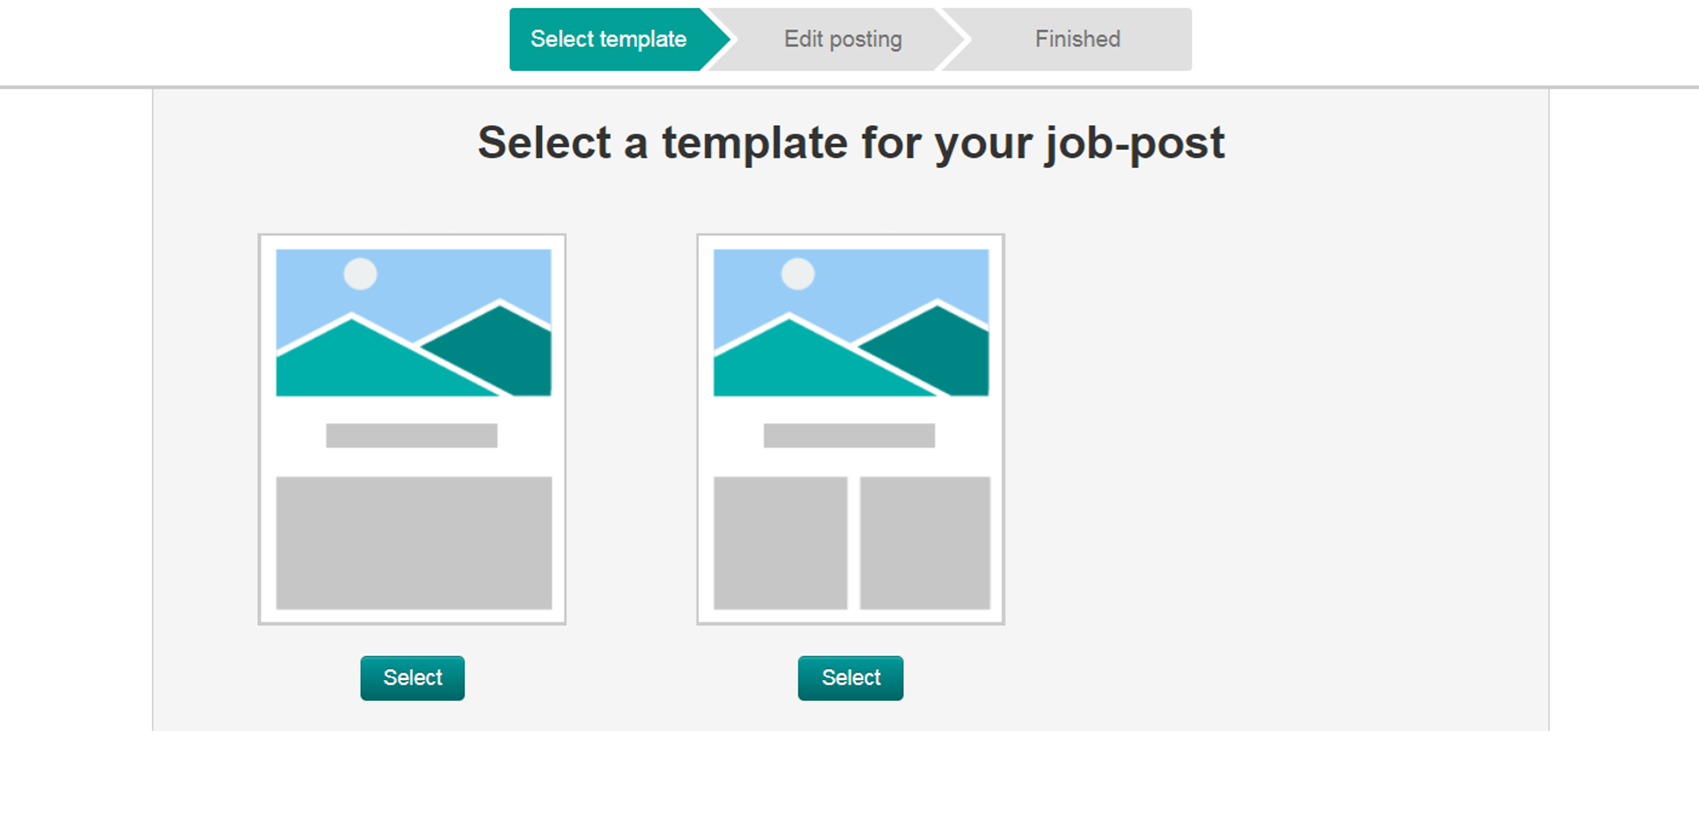 How To: Post Jobs Advertisements Faster Using a Template